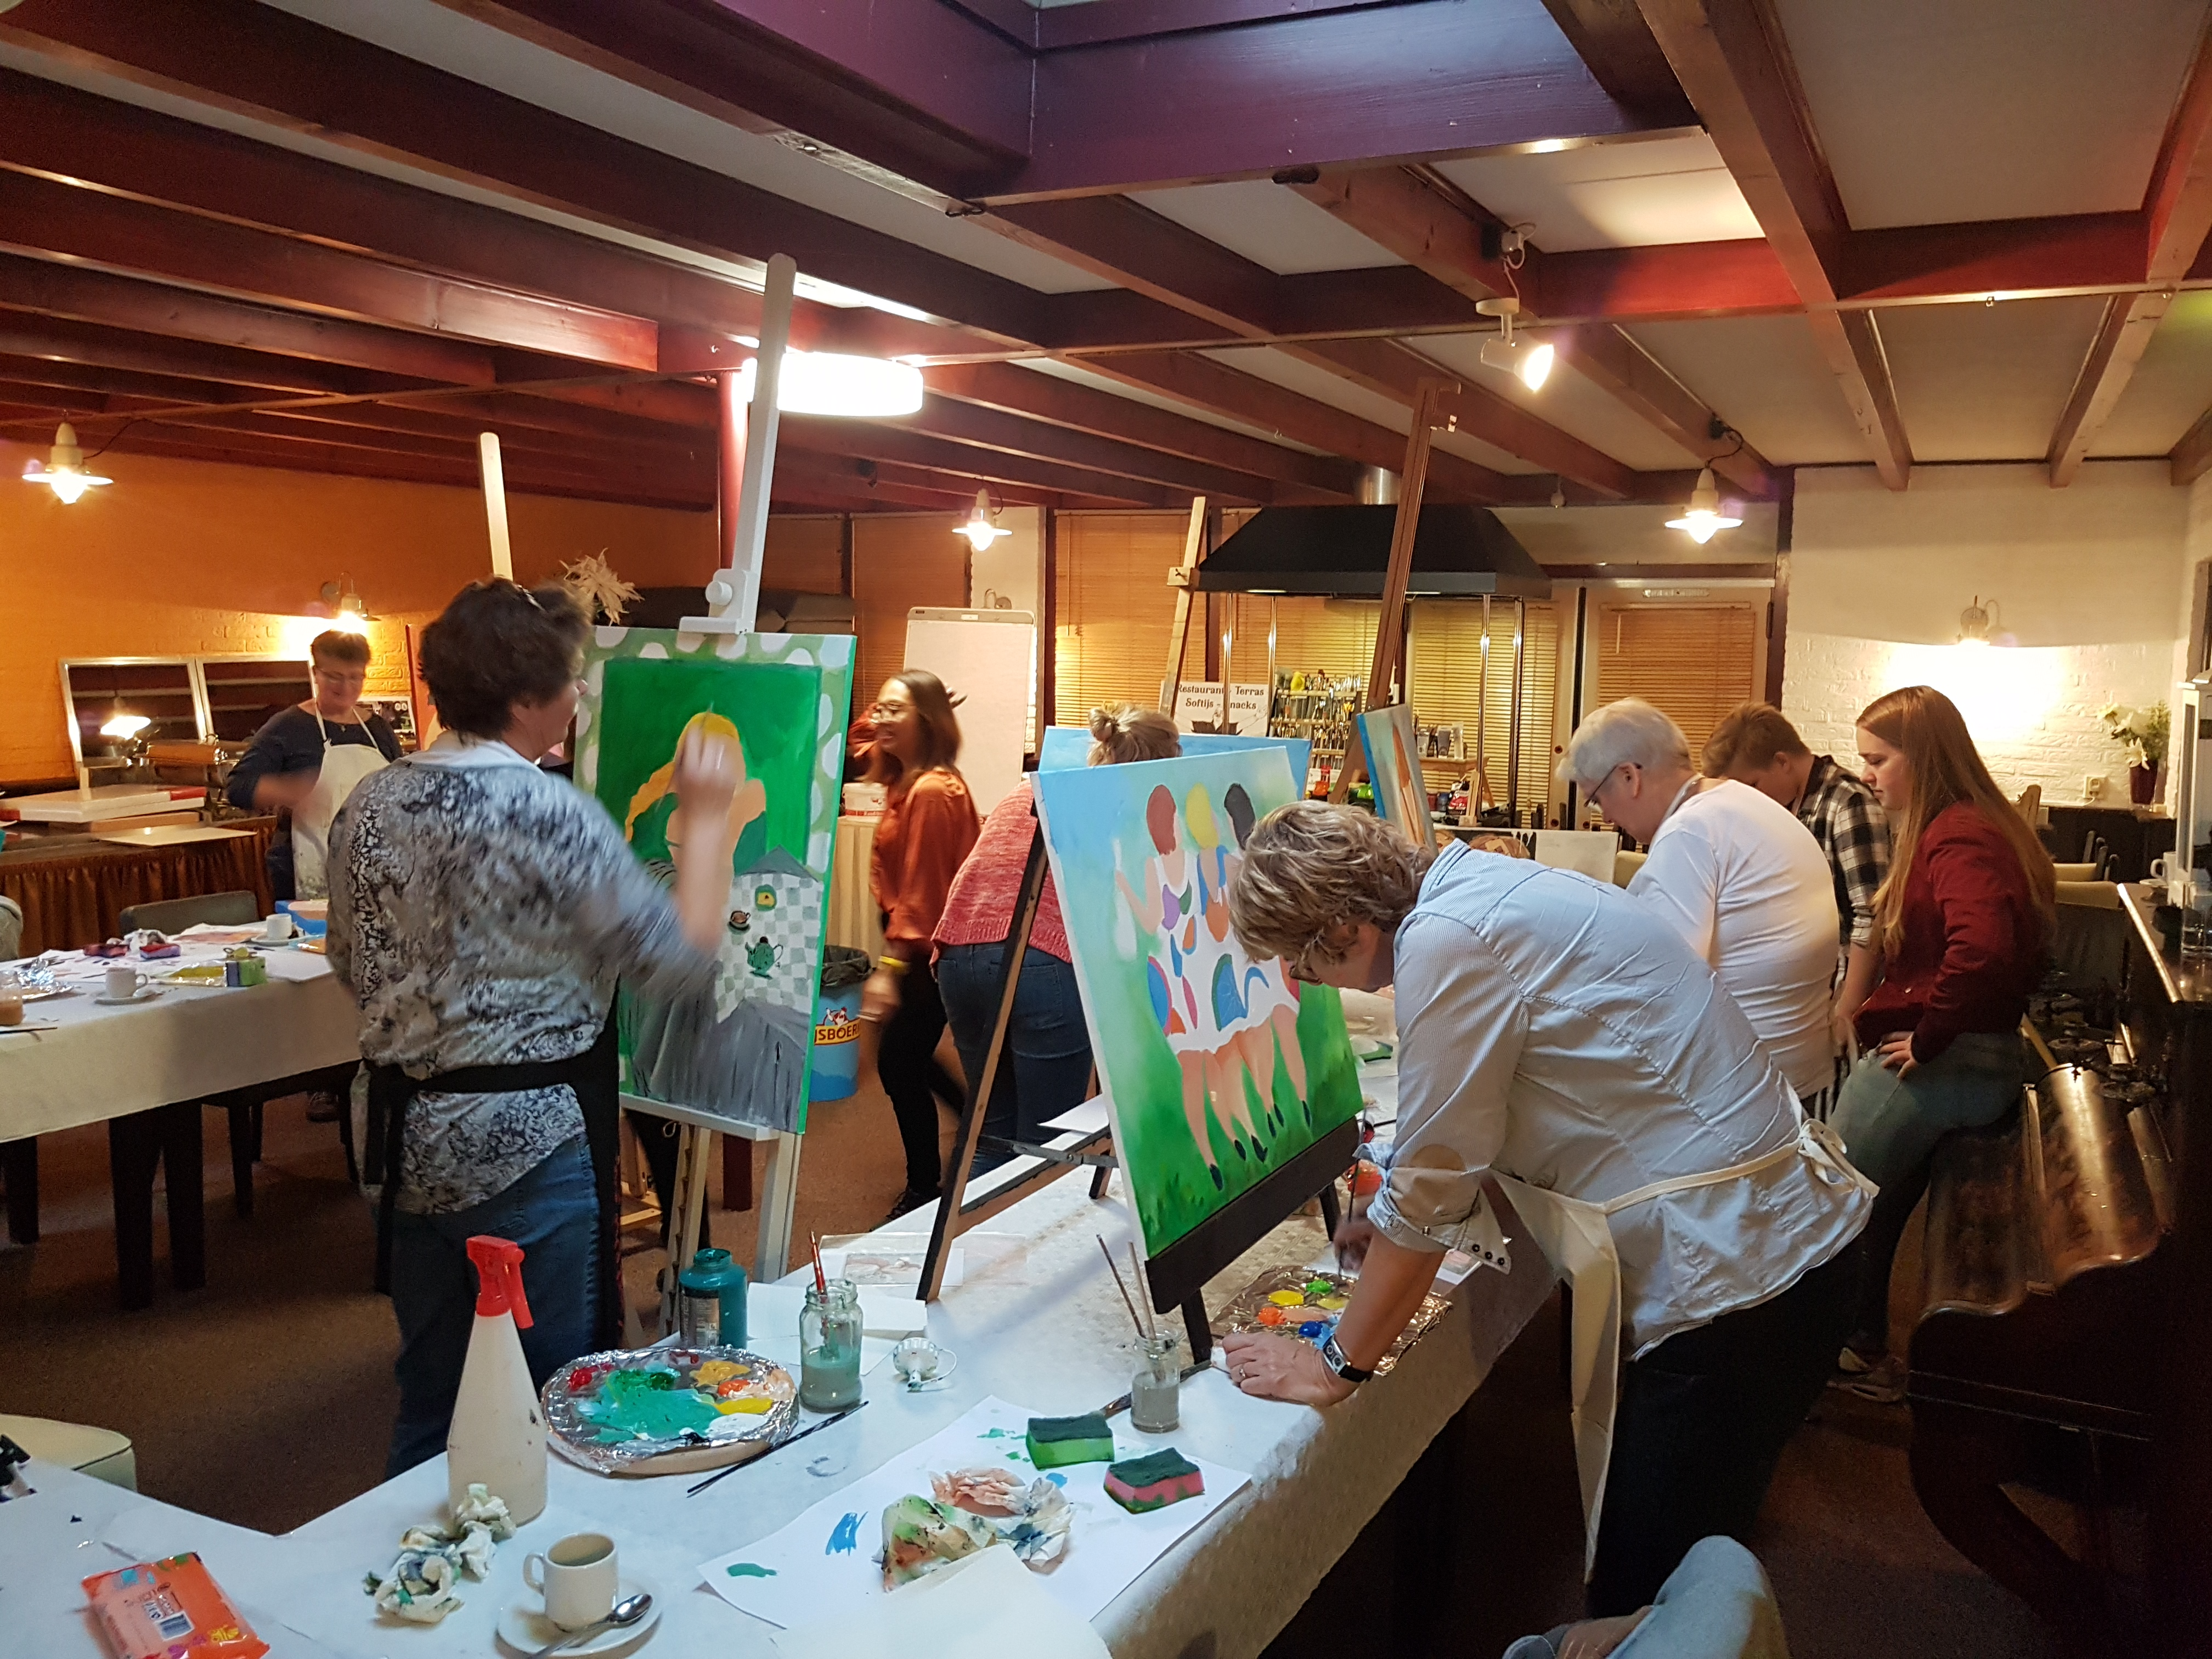 Painting workshop Thema: Dikkedames